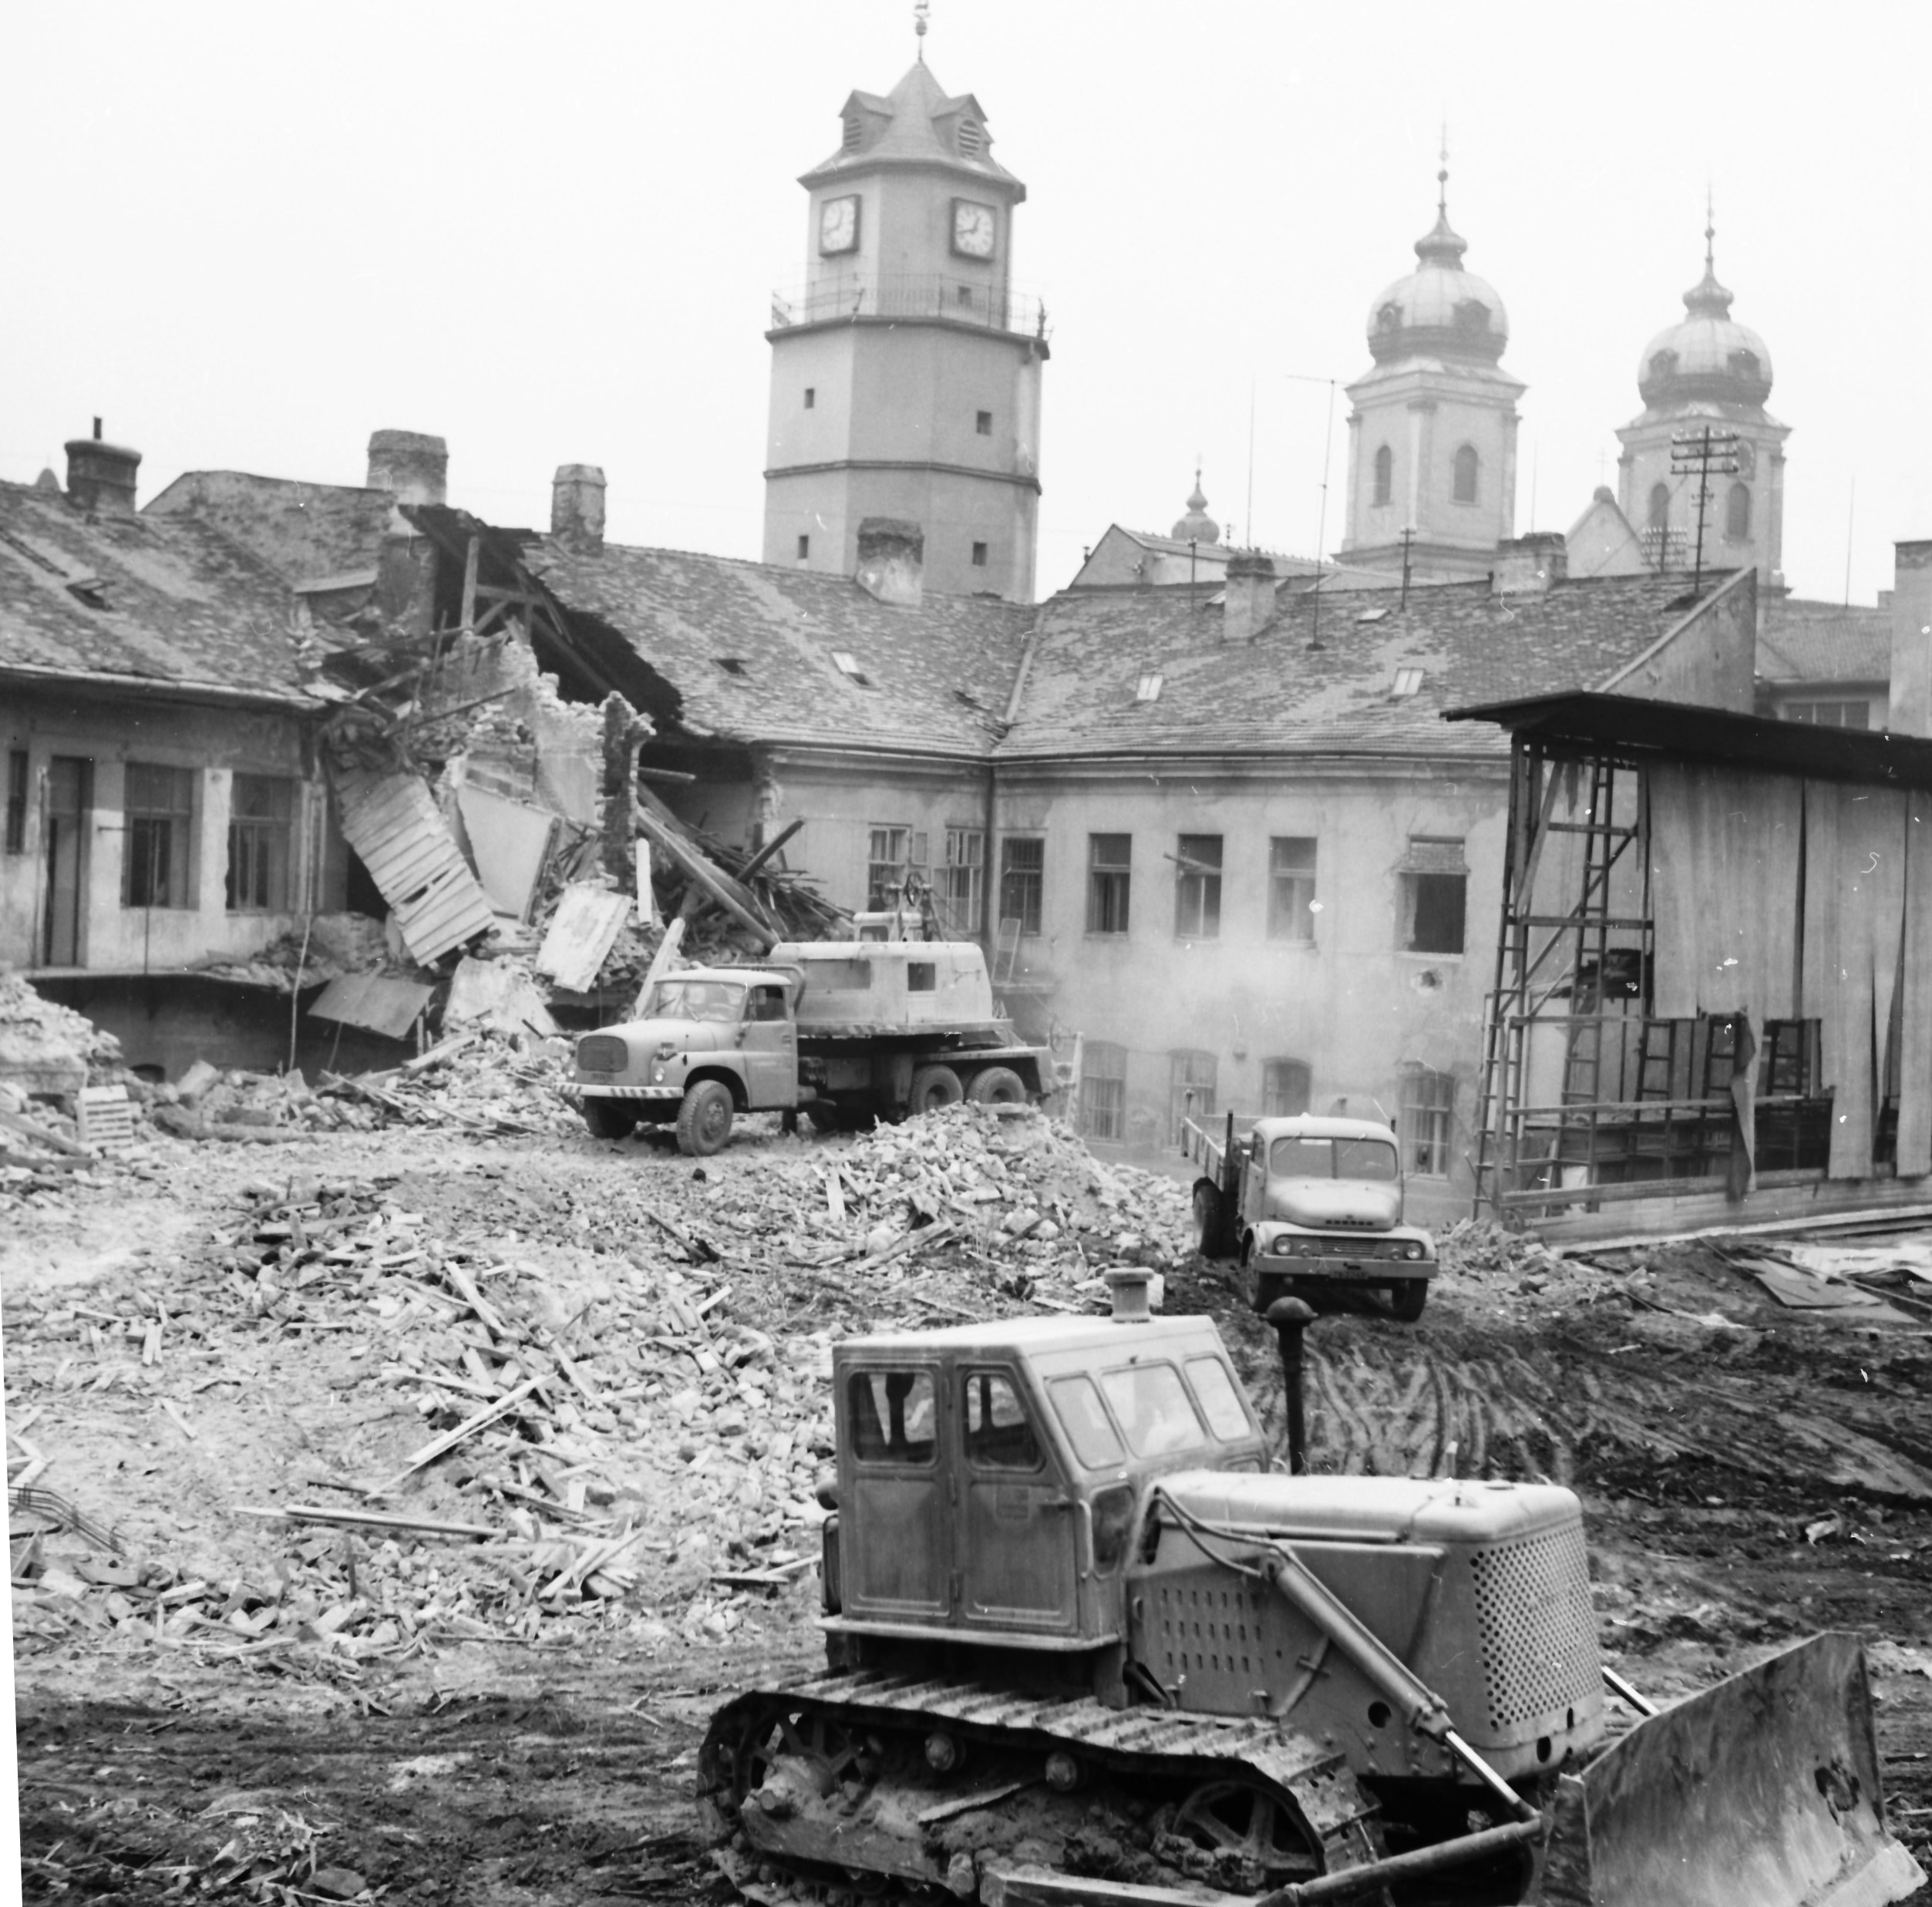 10. Excavator tears down the rear section of the building at the site of today's Atrium under the City Tower (1974).